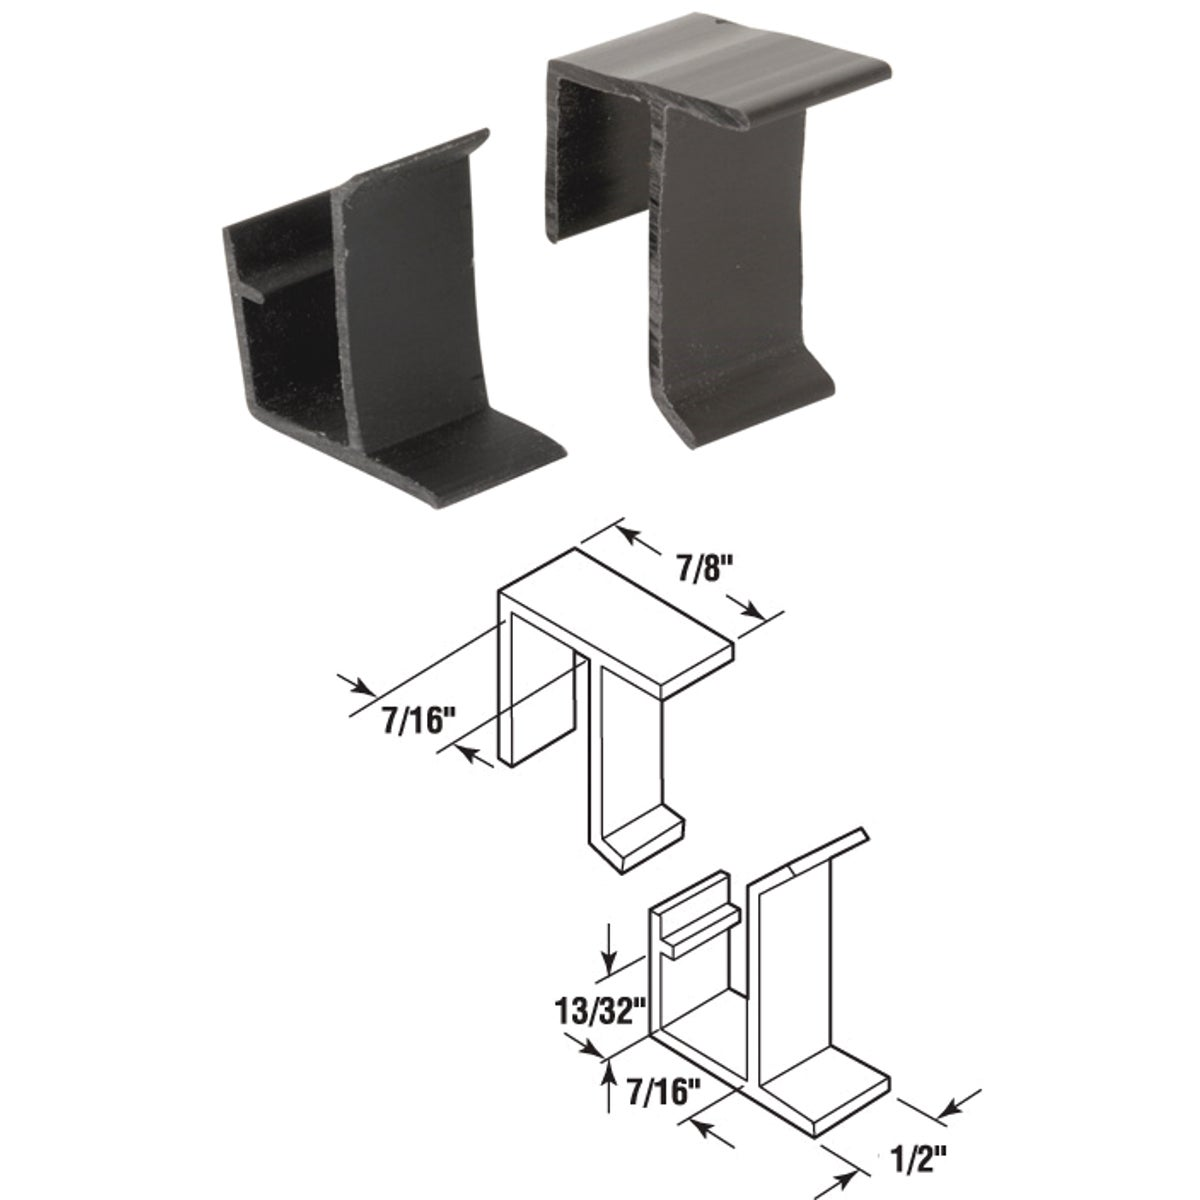 4 SETS TP&BTM RETNR CLIP - PL7765 by Prime Line Products